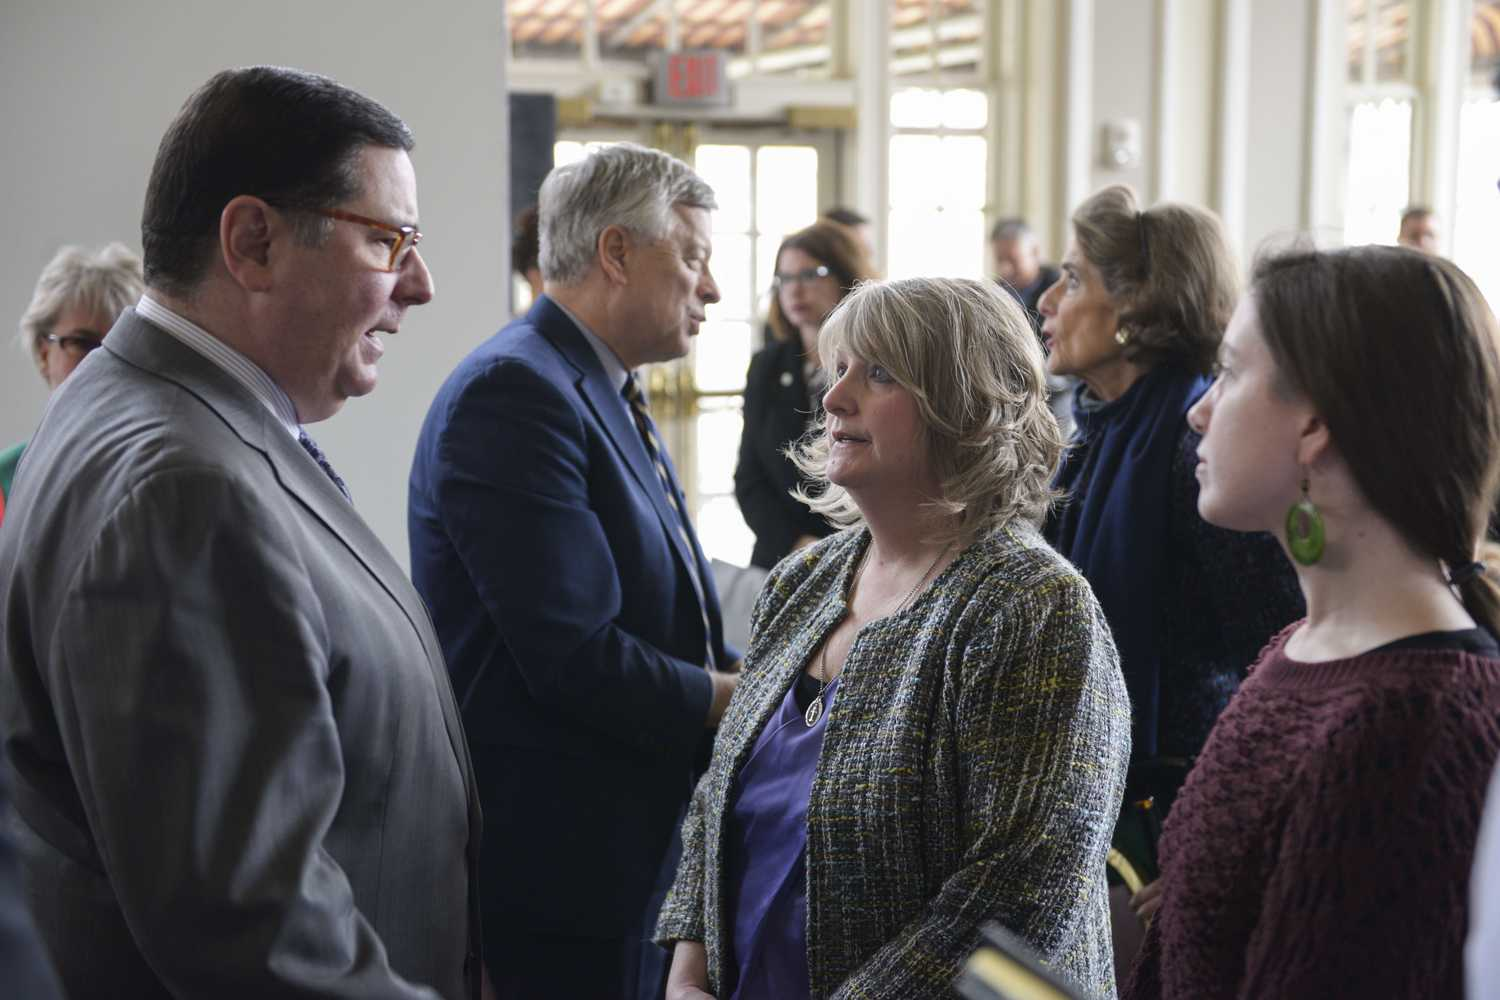 Mayor Bill Peduto (left) speaks with Michelle Lynam and her daughter Kimberly Lawther (right), as former Pitt Chancellor mark Nordenberg greets other guests behind them. (Photo by Chiara Rigaud | Staff Photographer)